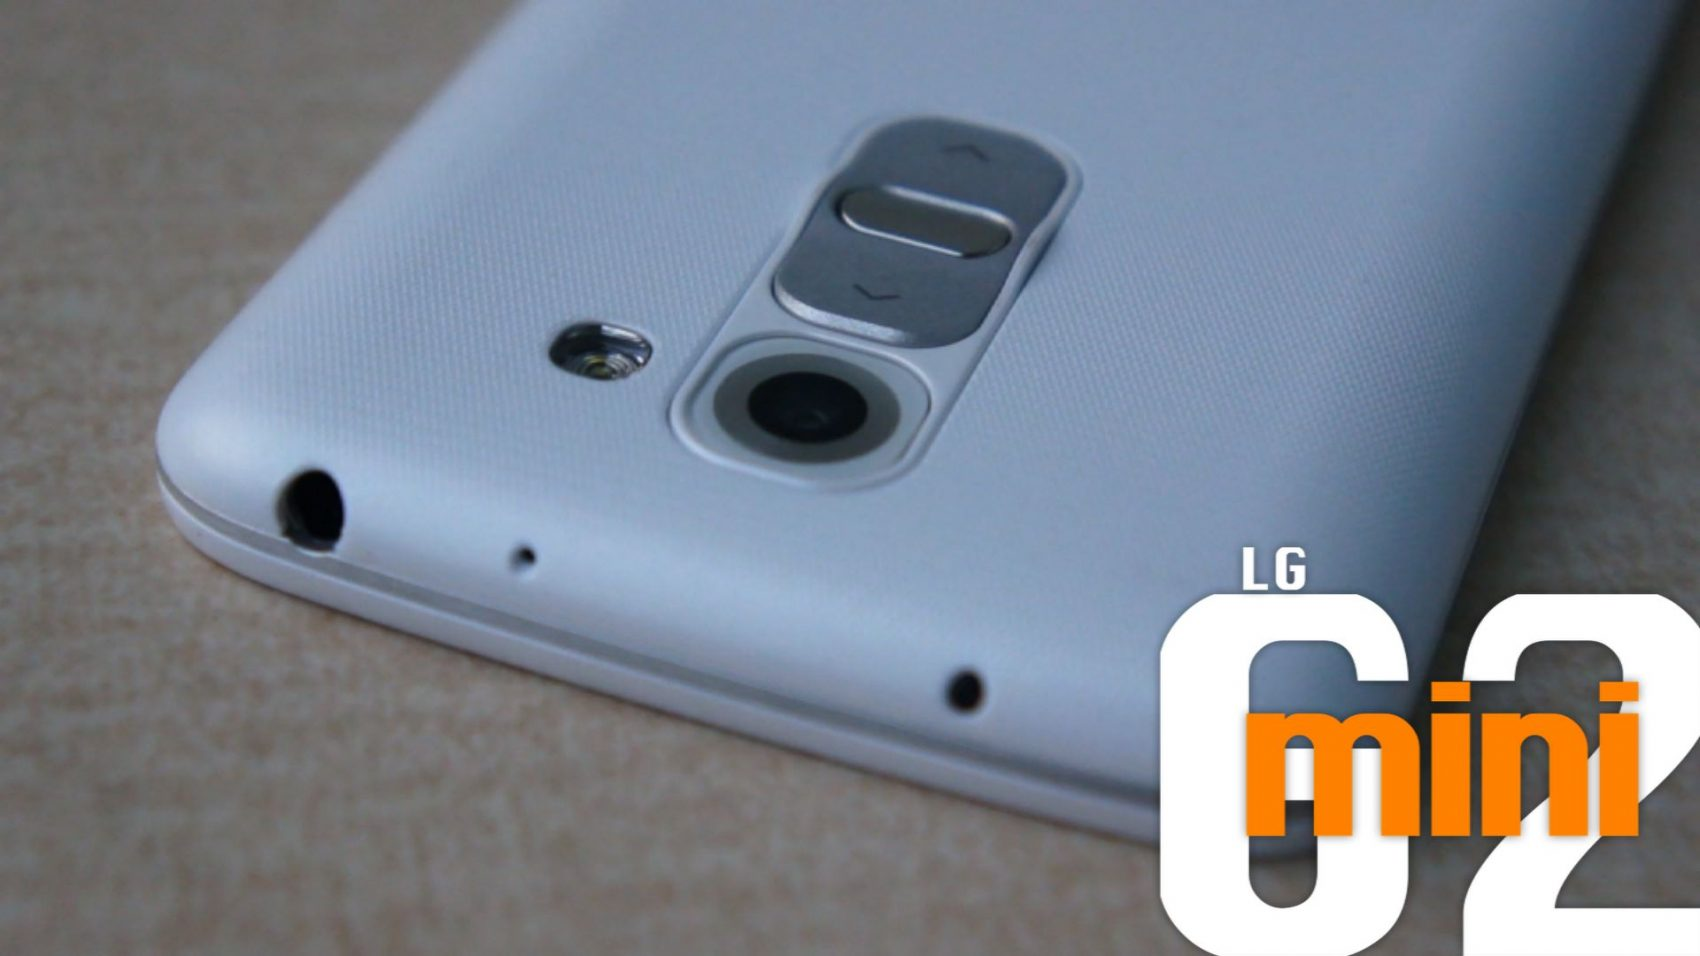 Power ON #079 : LG G2 mini